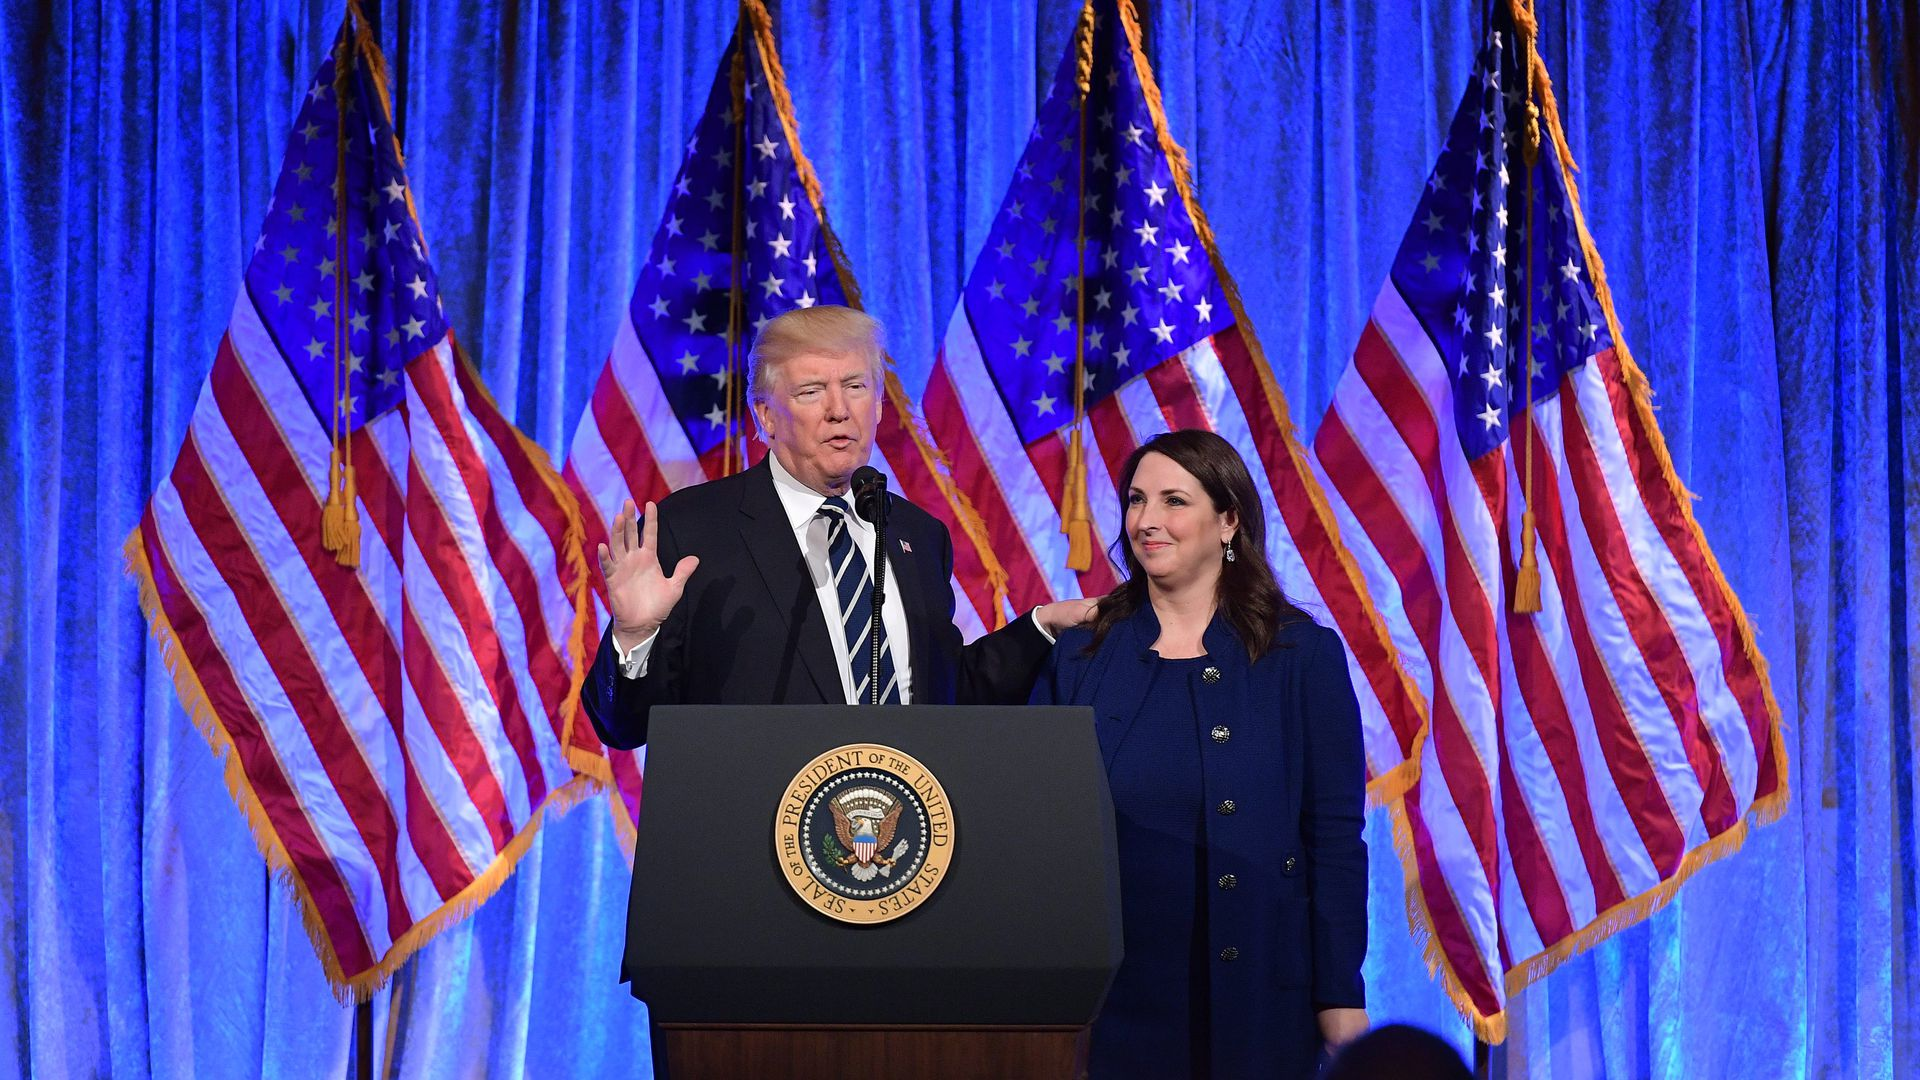 President Trump and RNC Chairwoman Ronna McDaniel in front of a blue curtain and a line of American flags.